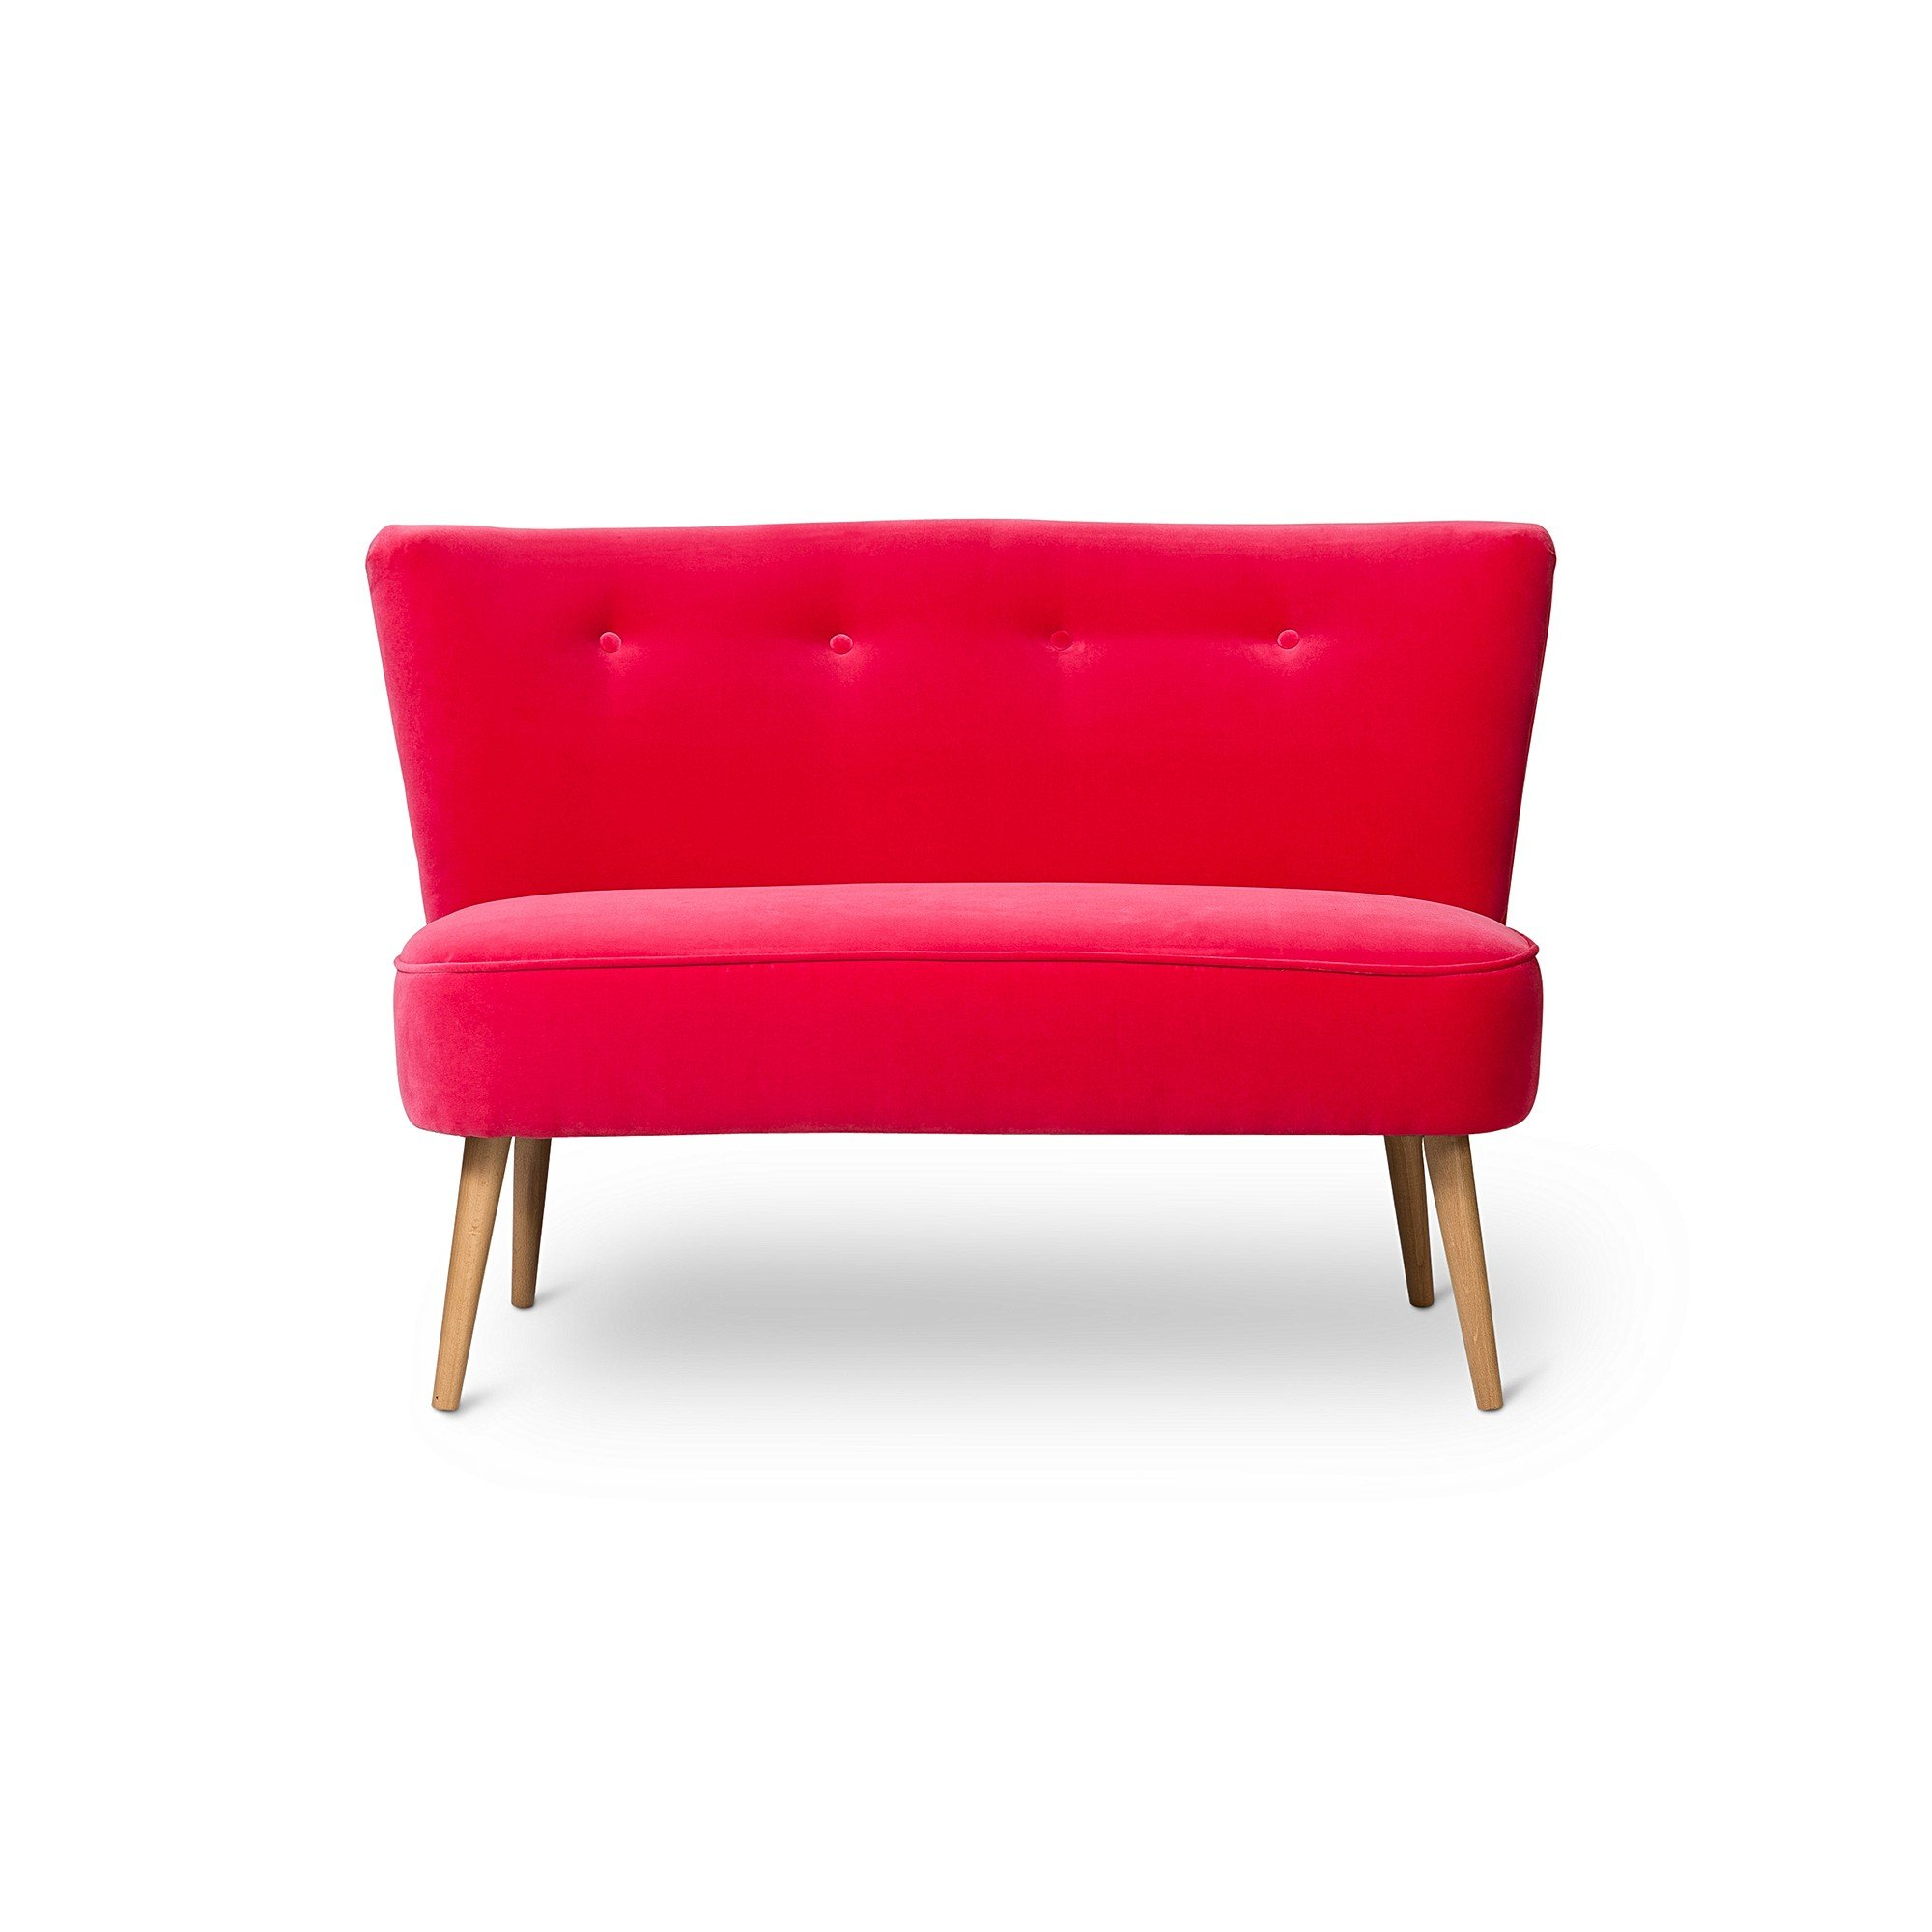 Le Cocktail Velvet Bright Fuchsia Pink Twin Loveseat